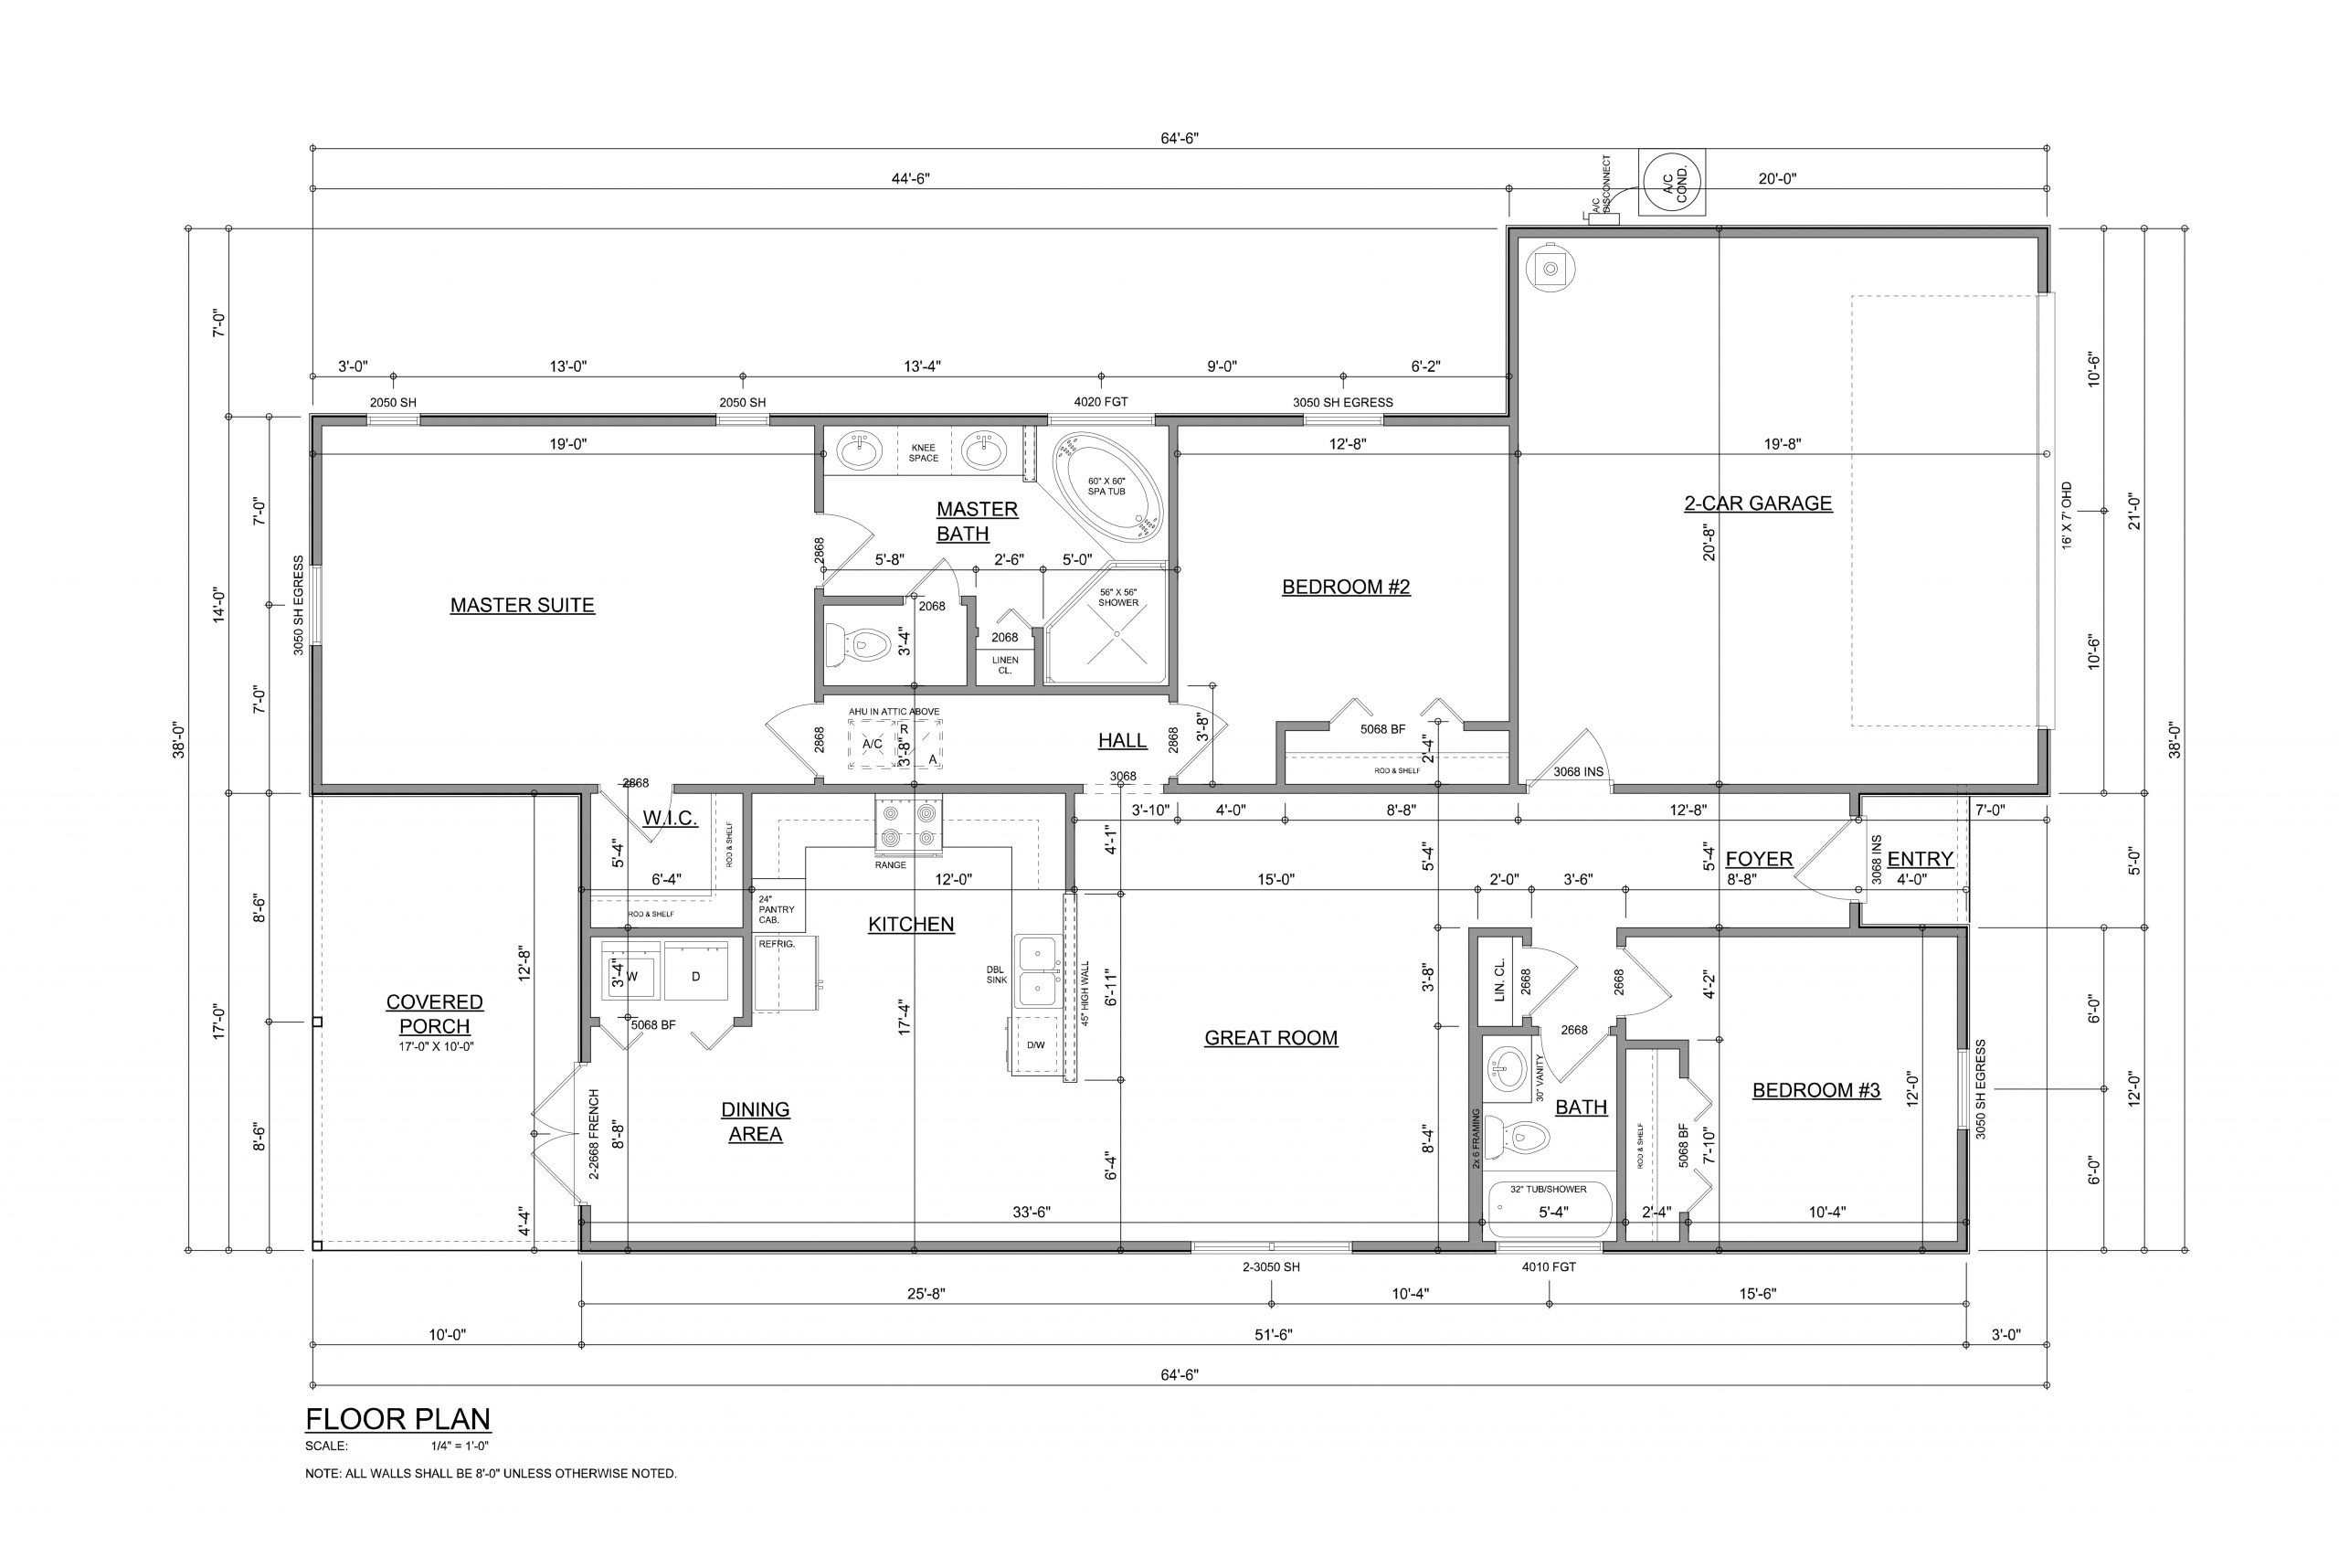 Osceola Floorplan by Devoro homes